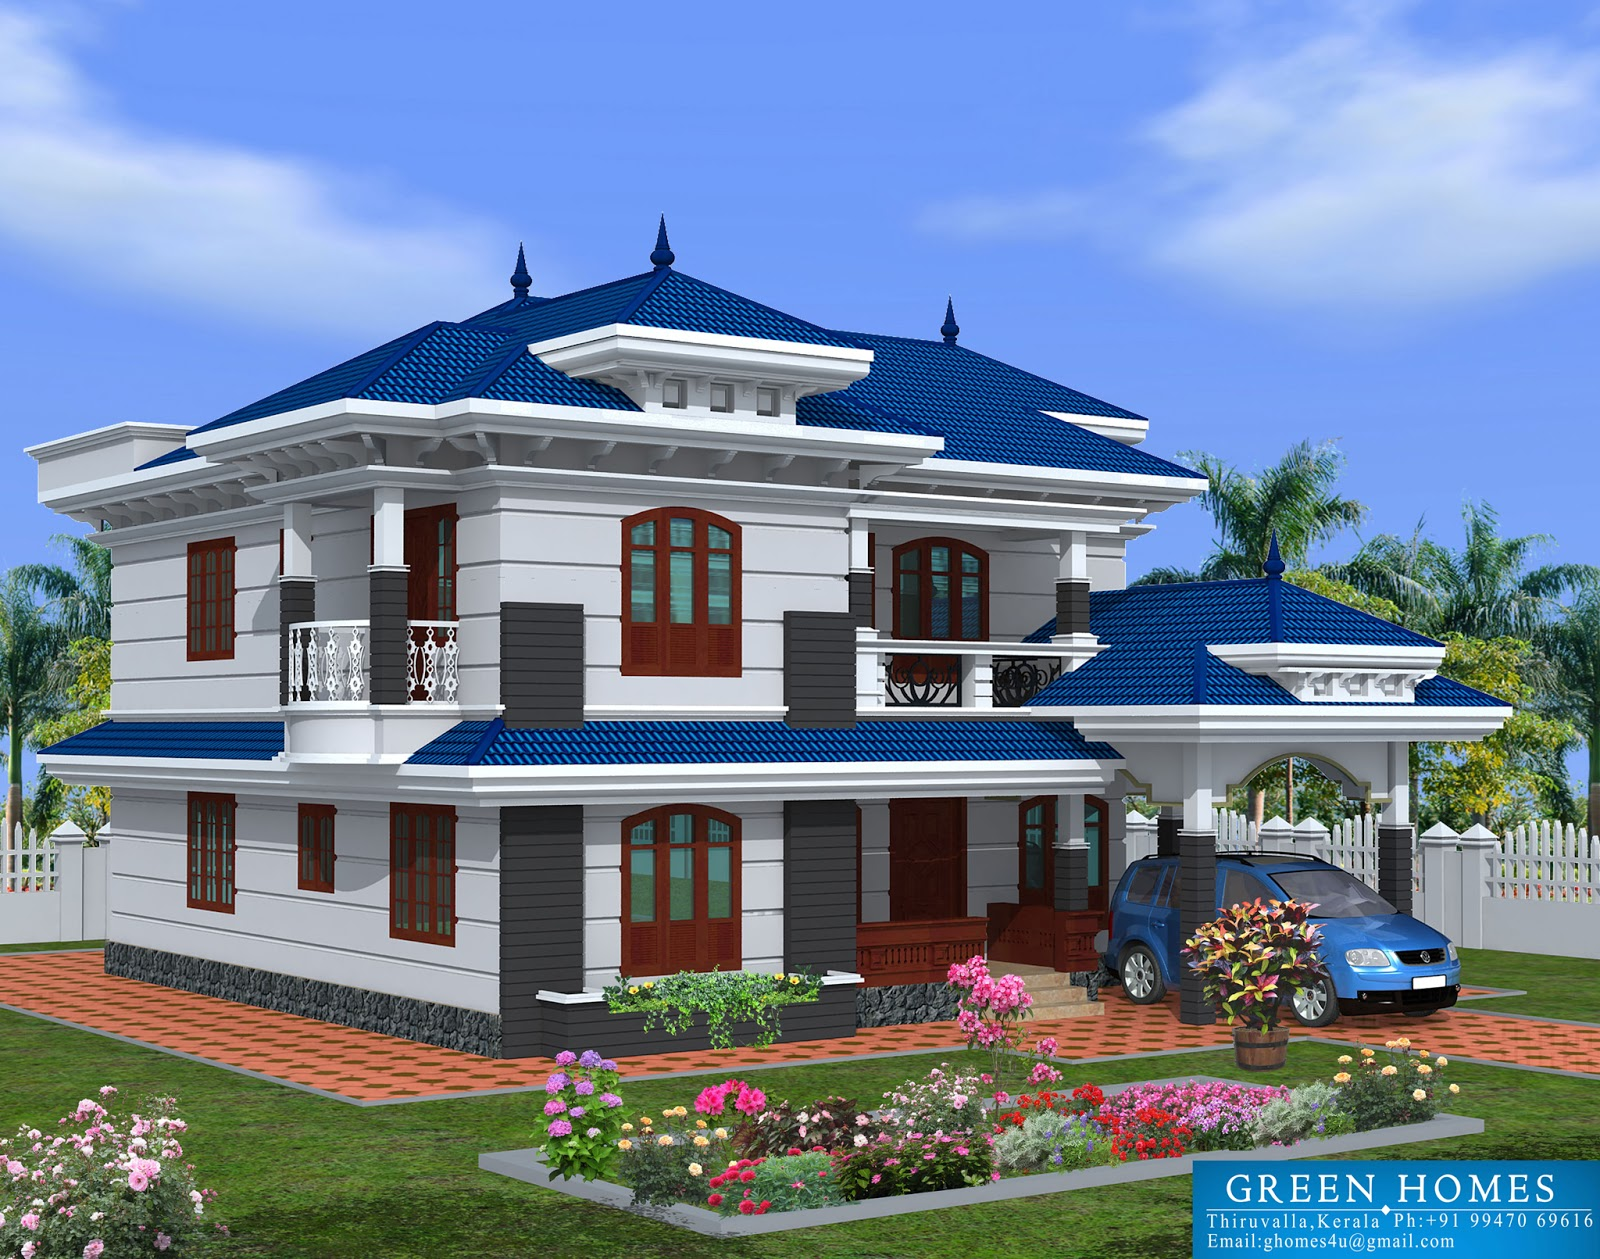 Green homes beautiful kerala home design for House building companies